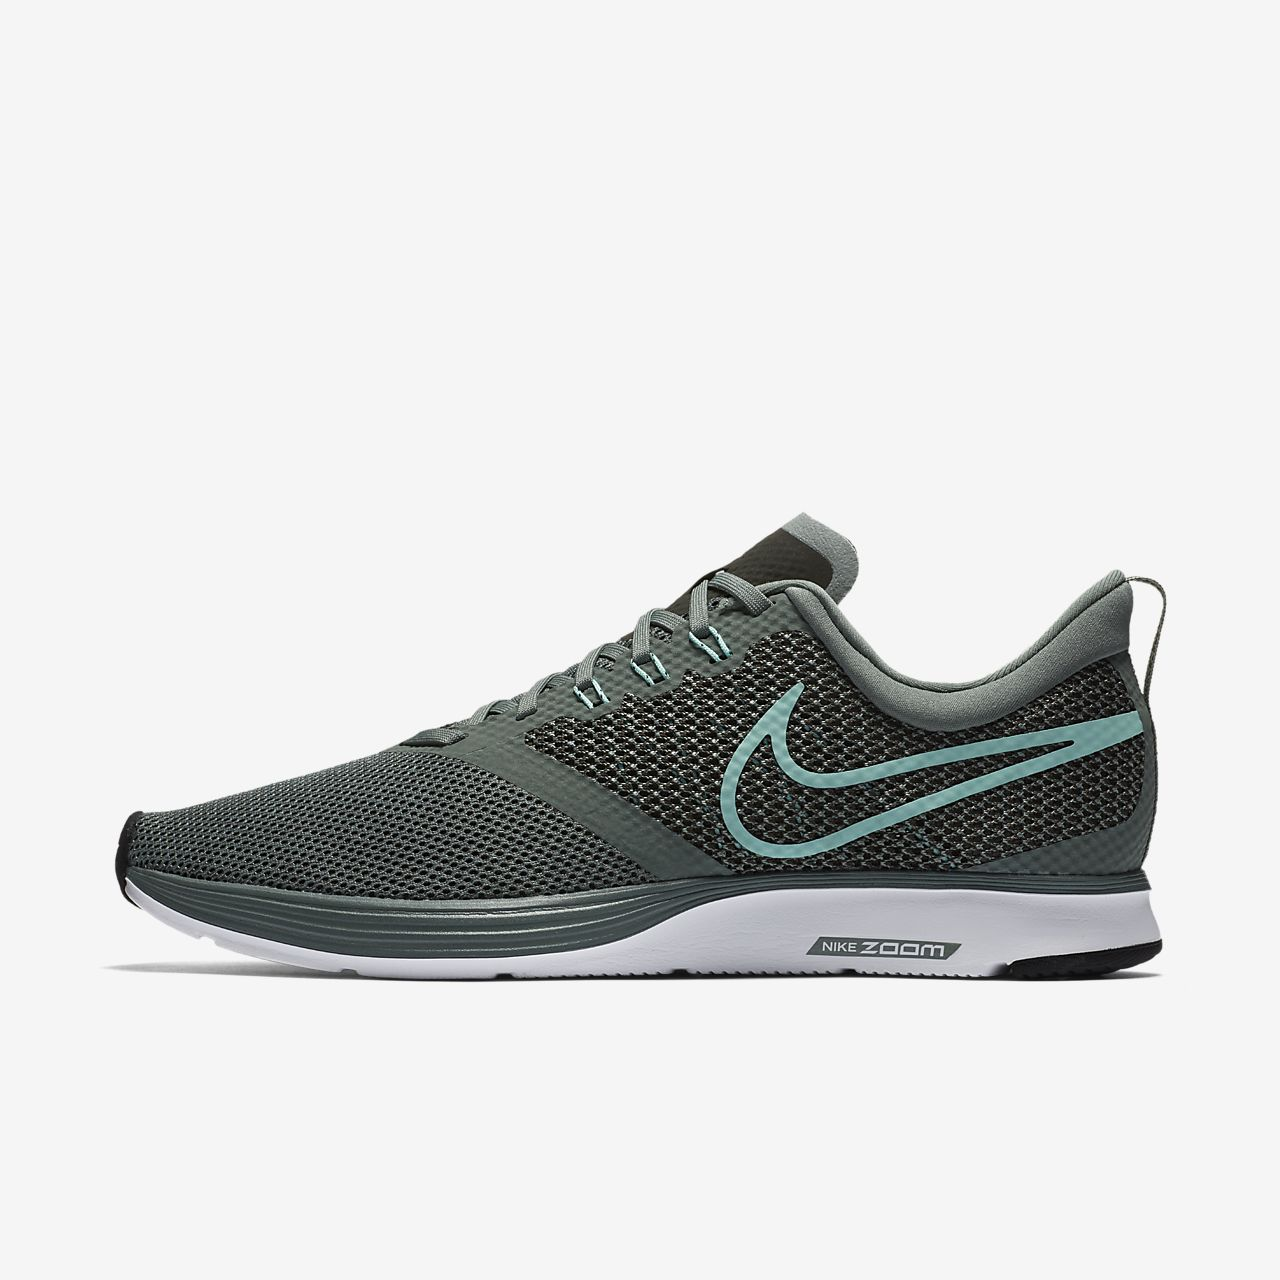 NIKE MEN ZOOM STRIKE ATHLETIC/RUNNING SHOES [AJ0189 401]